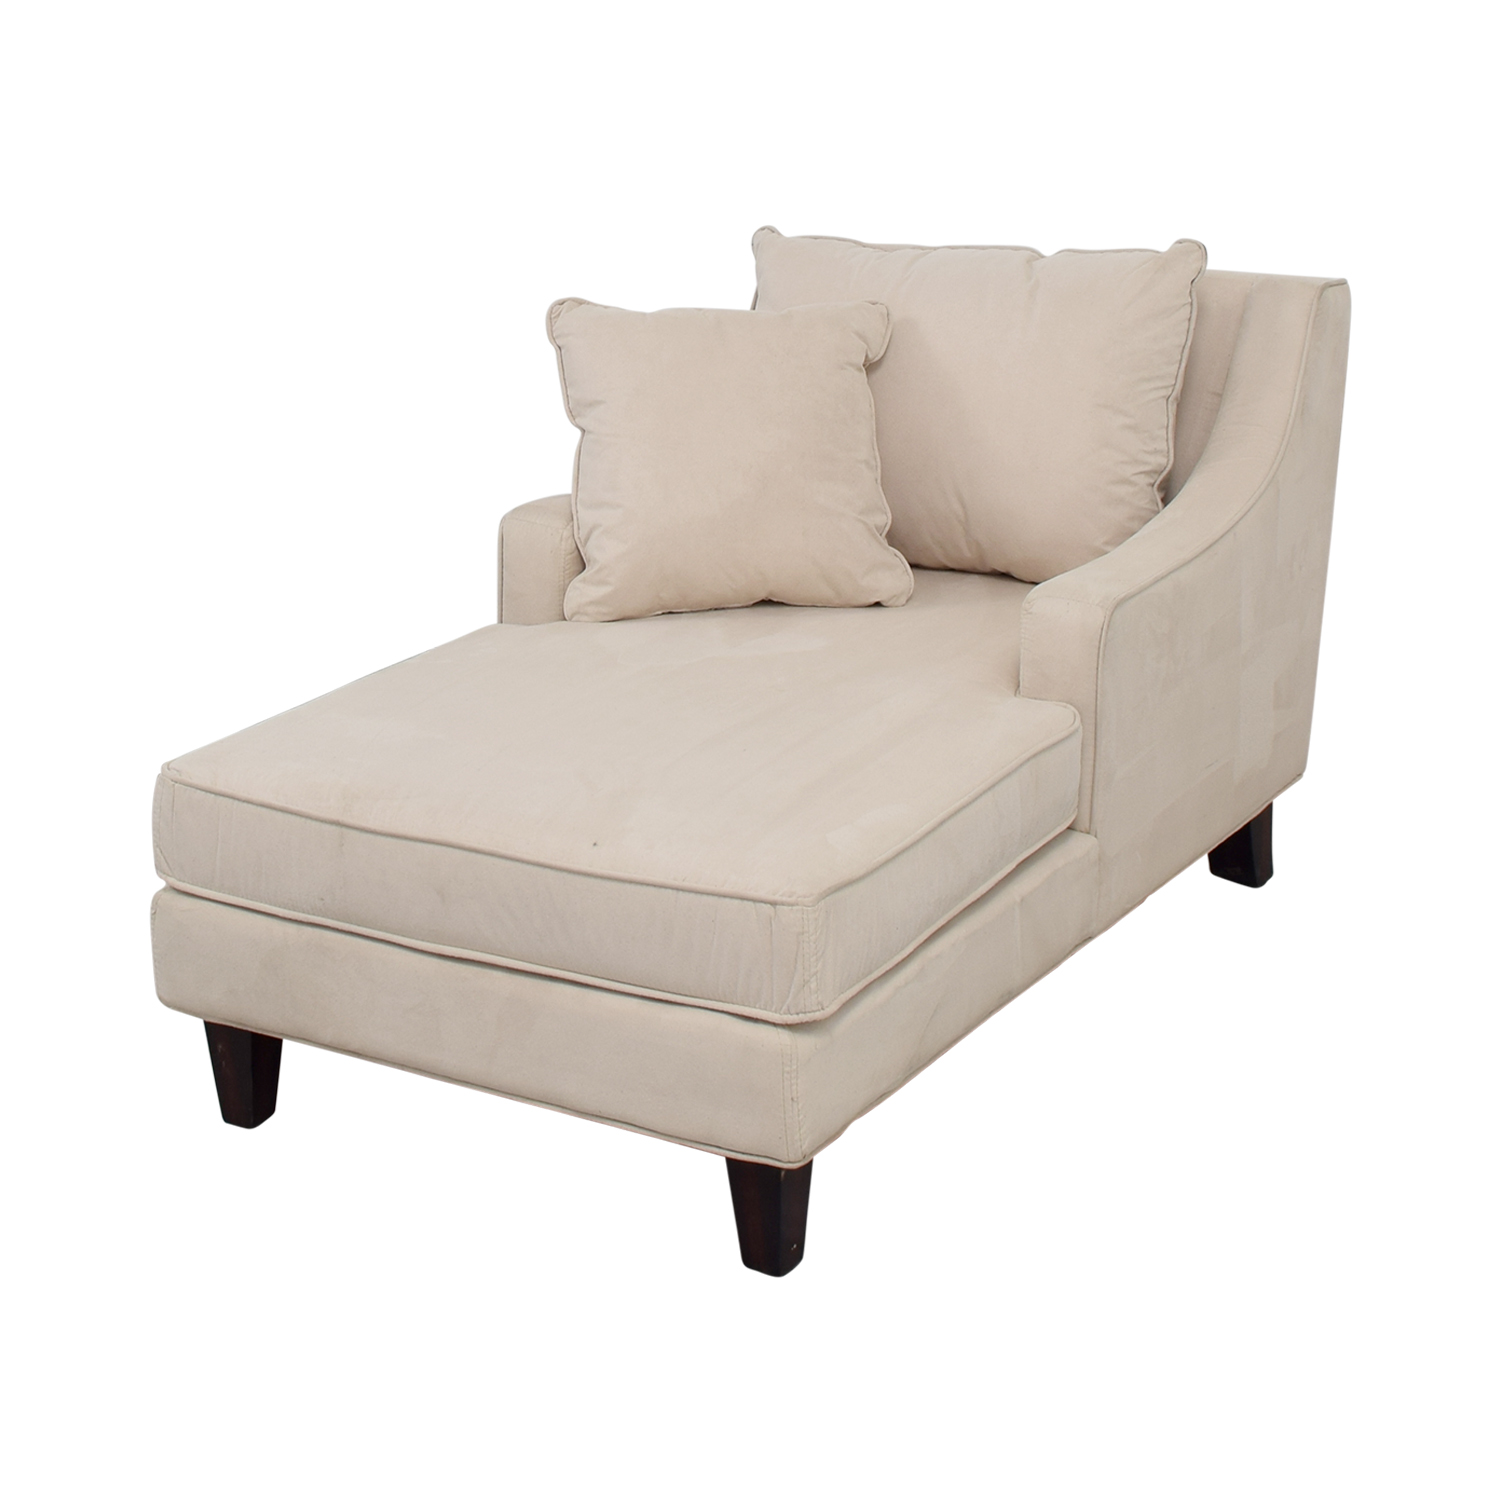 Coaster Coaster Beige Microfiber Chaise Lounger coupon